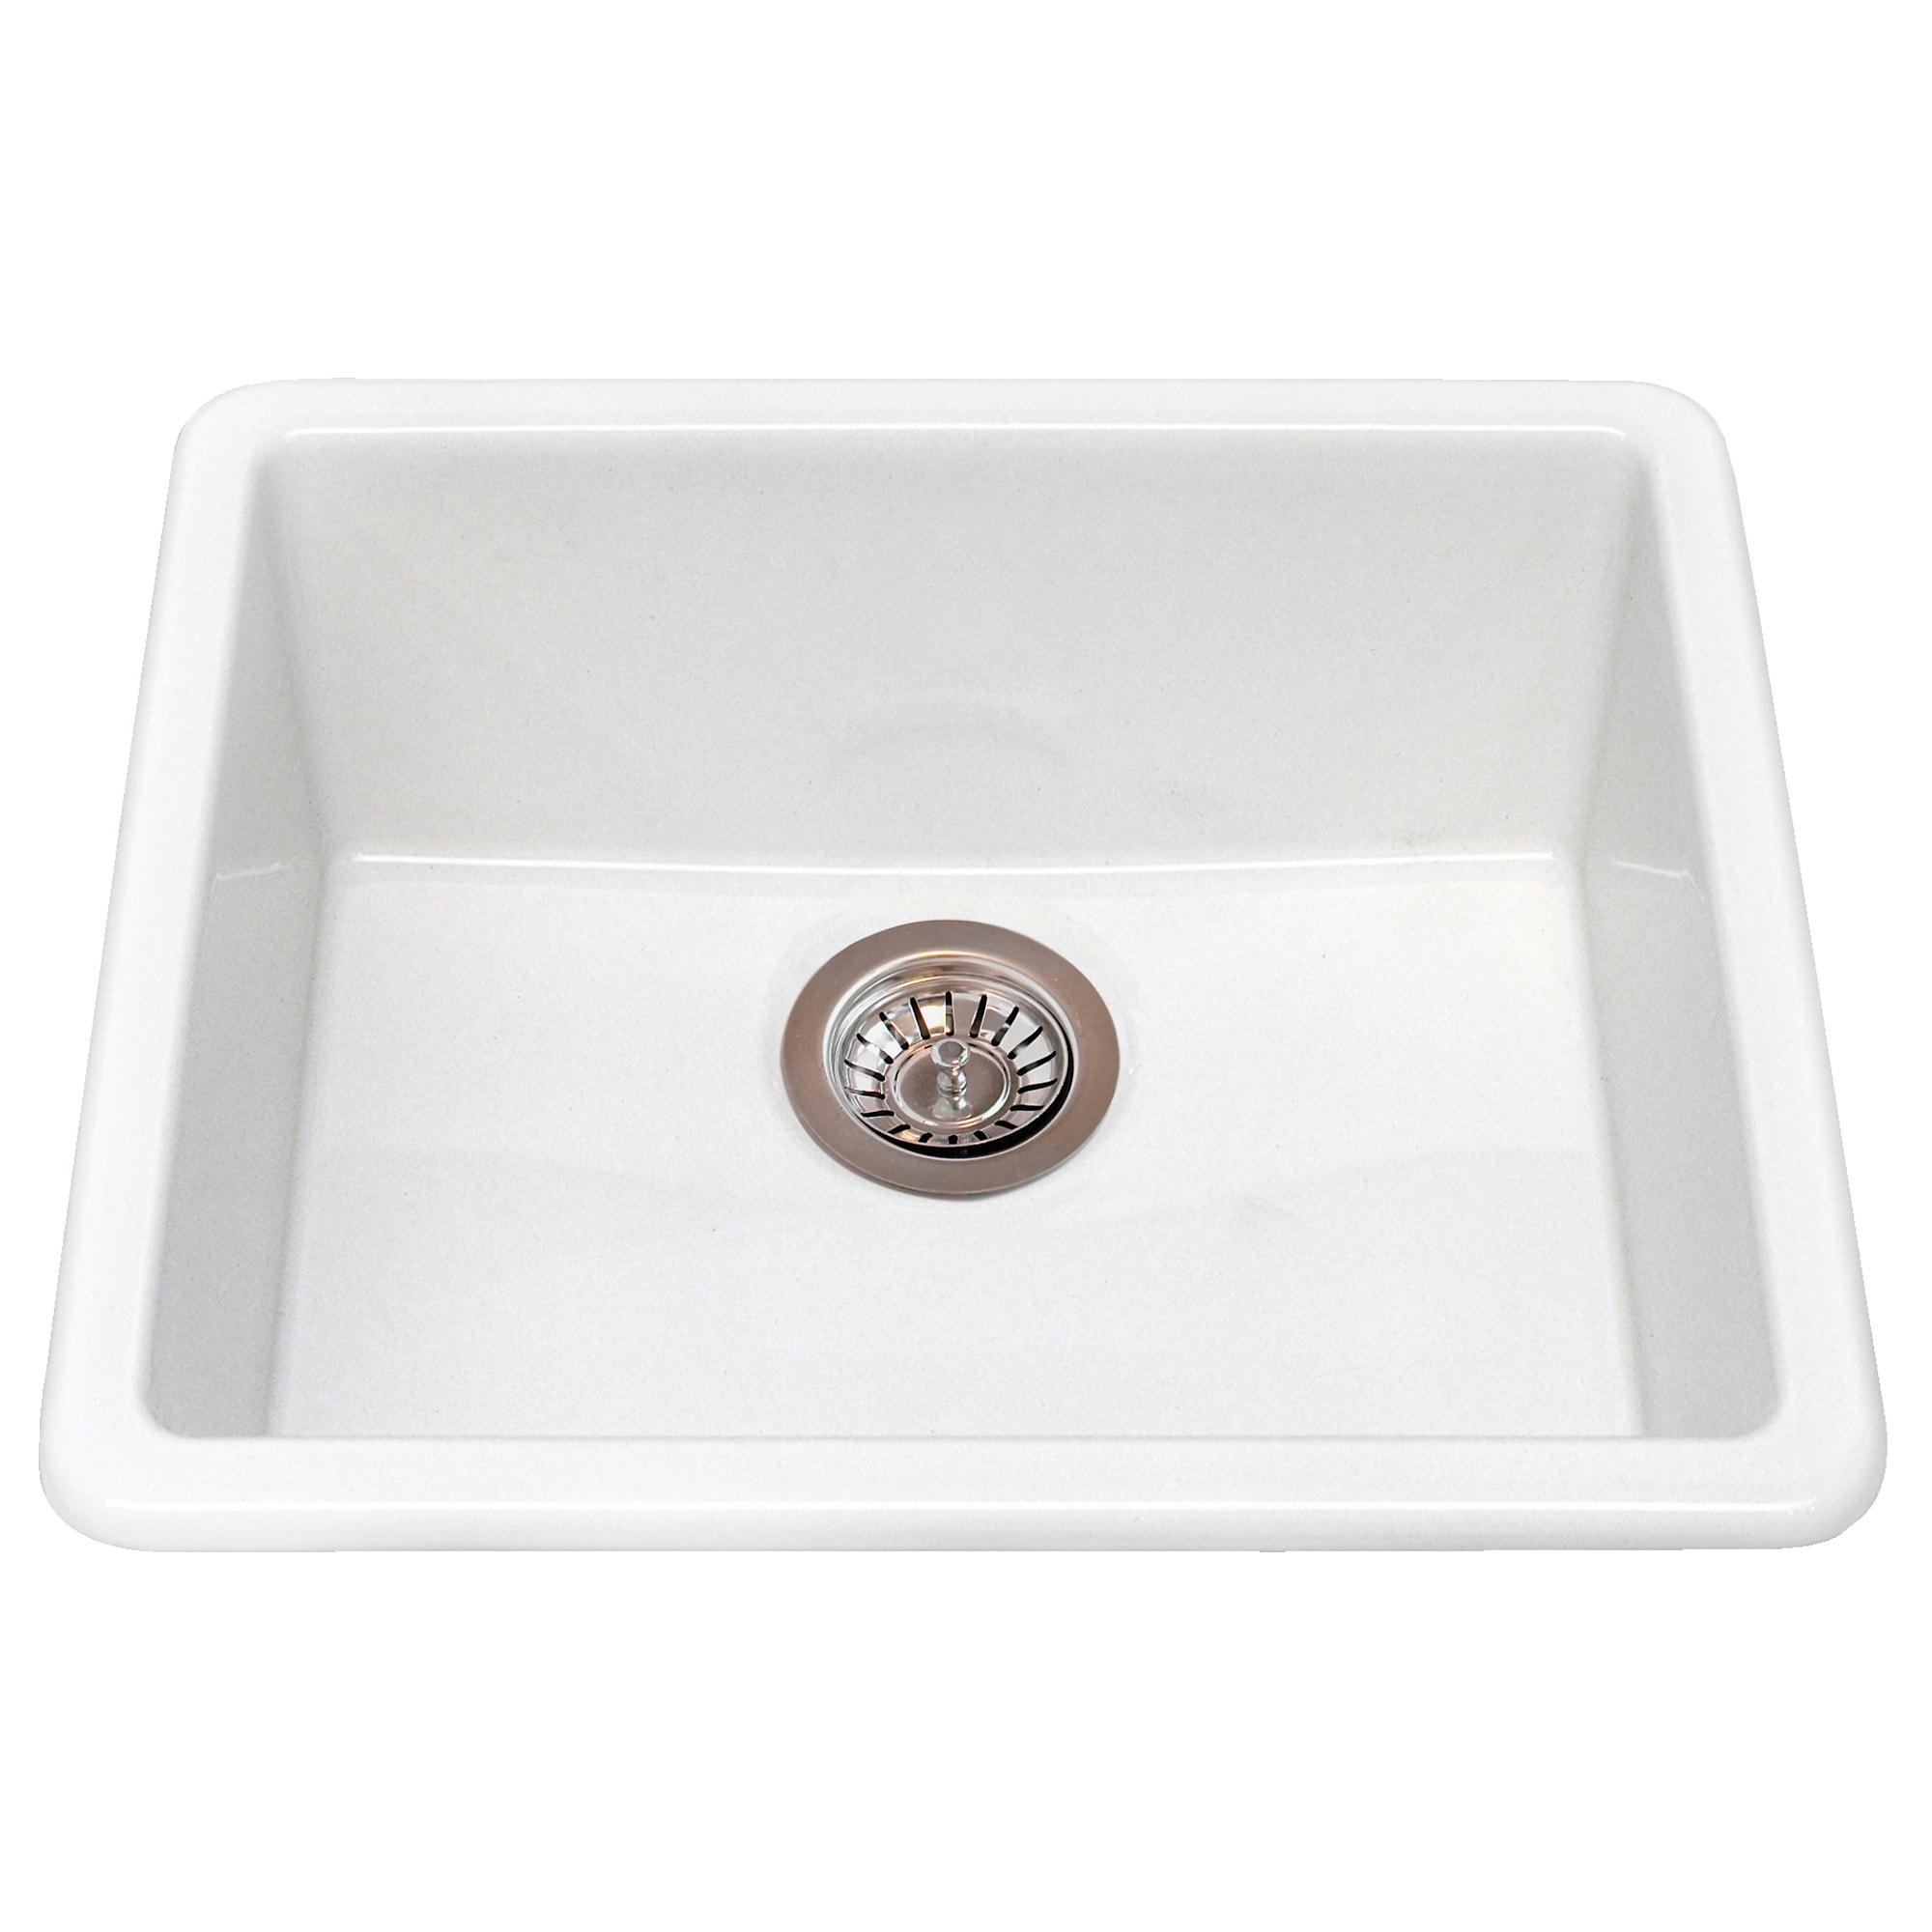 Collection Porcelain Kitchen Sink Australia Pictures - Home and D?cor ...